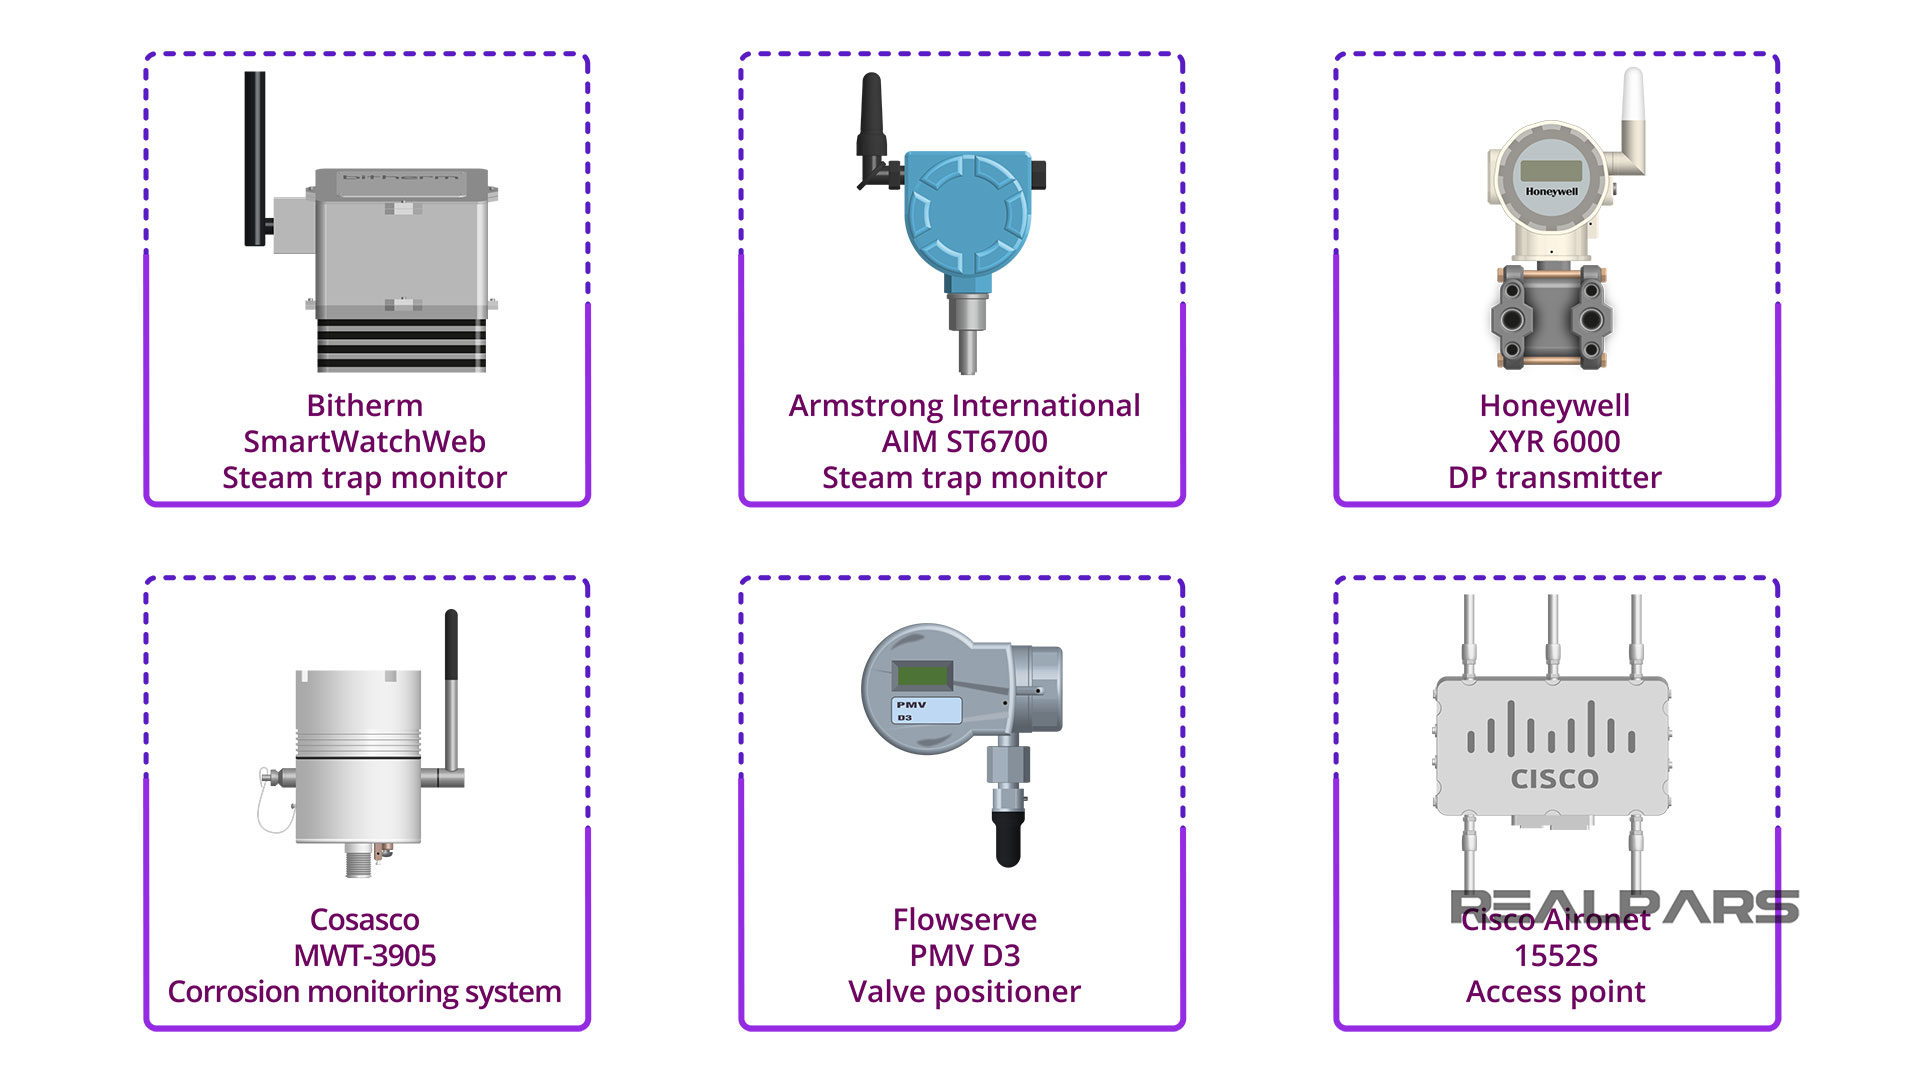 Instruments for Alcoa certified by ISA100 Wireless